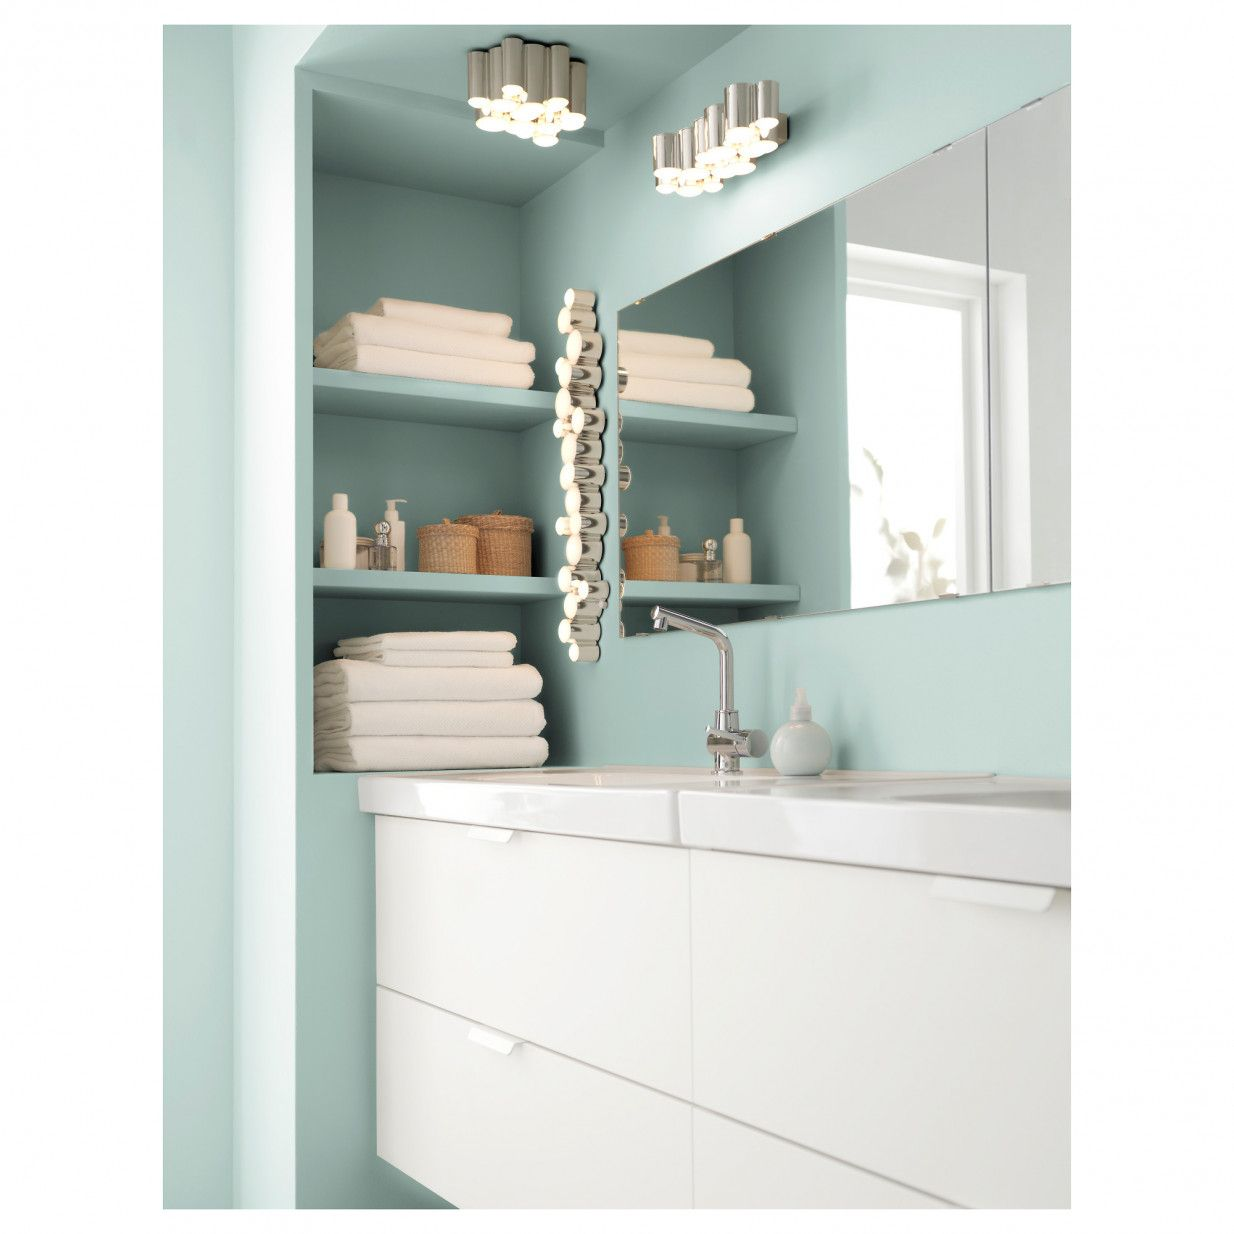 2019 Bathroom Cabinets with Lights Ikea - Interior Paint Color ...